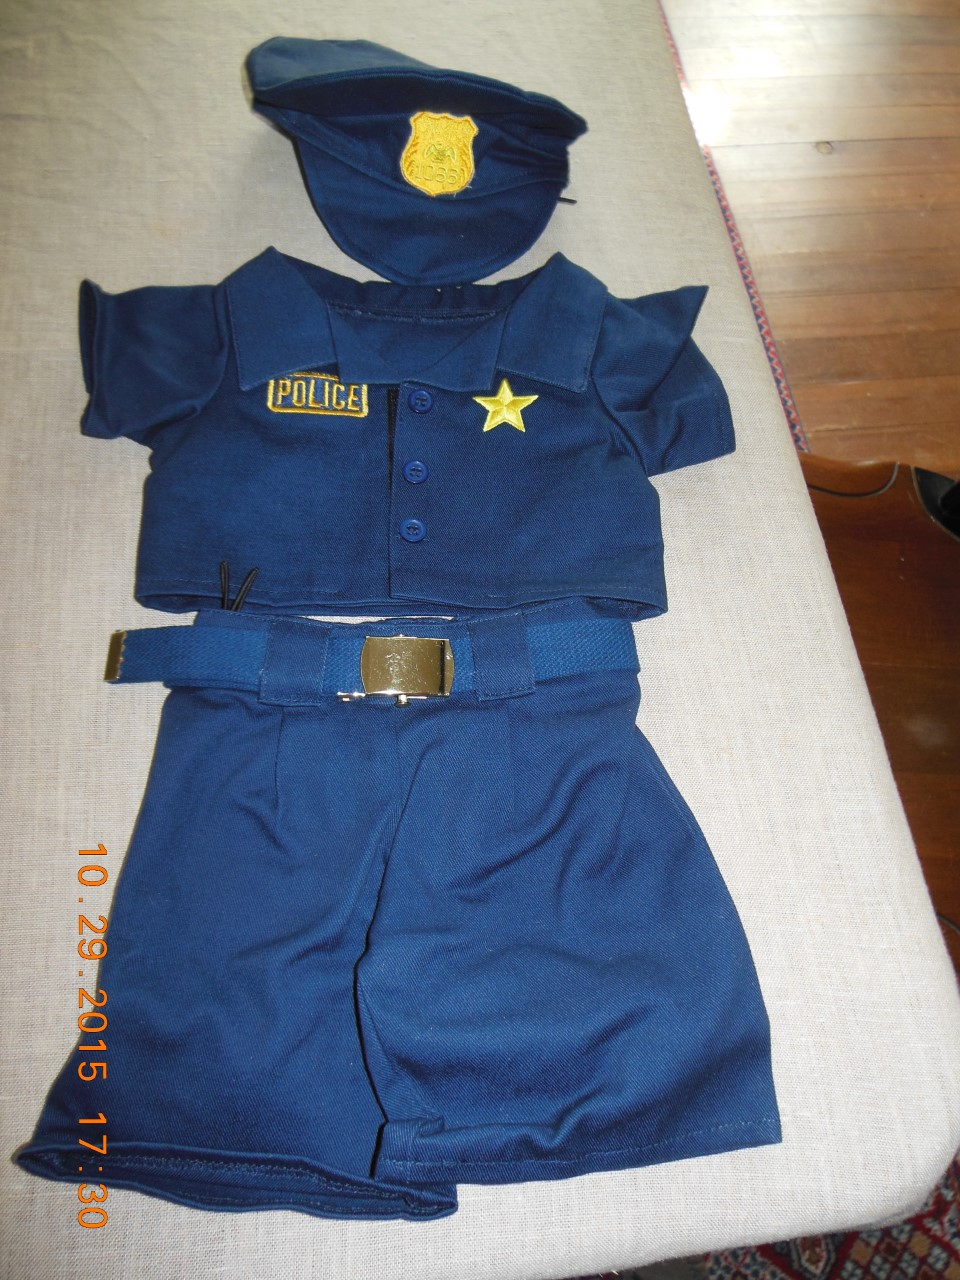 Policeman Uniform